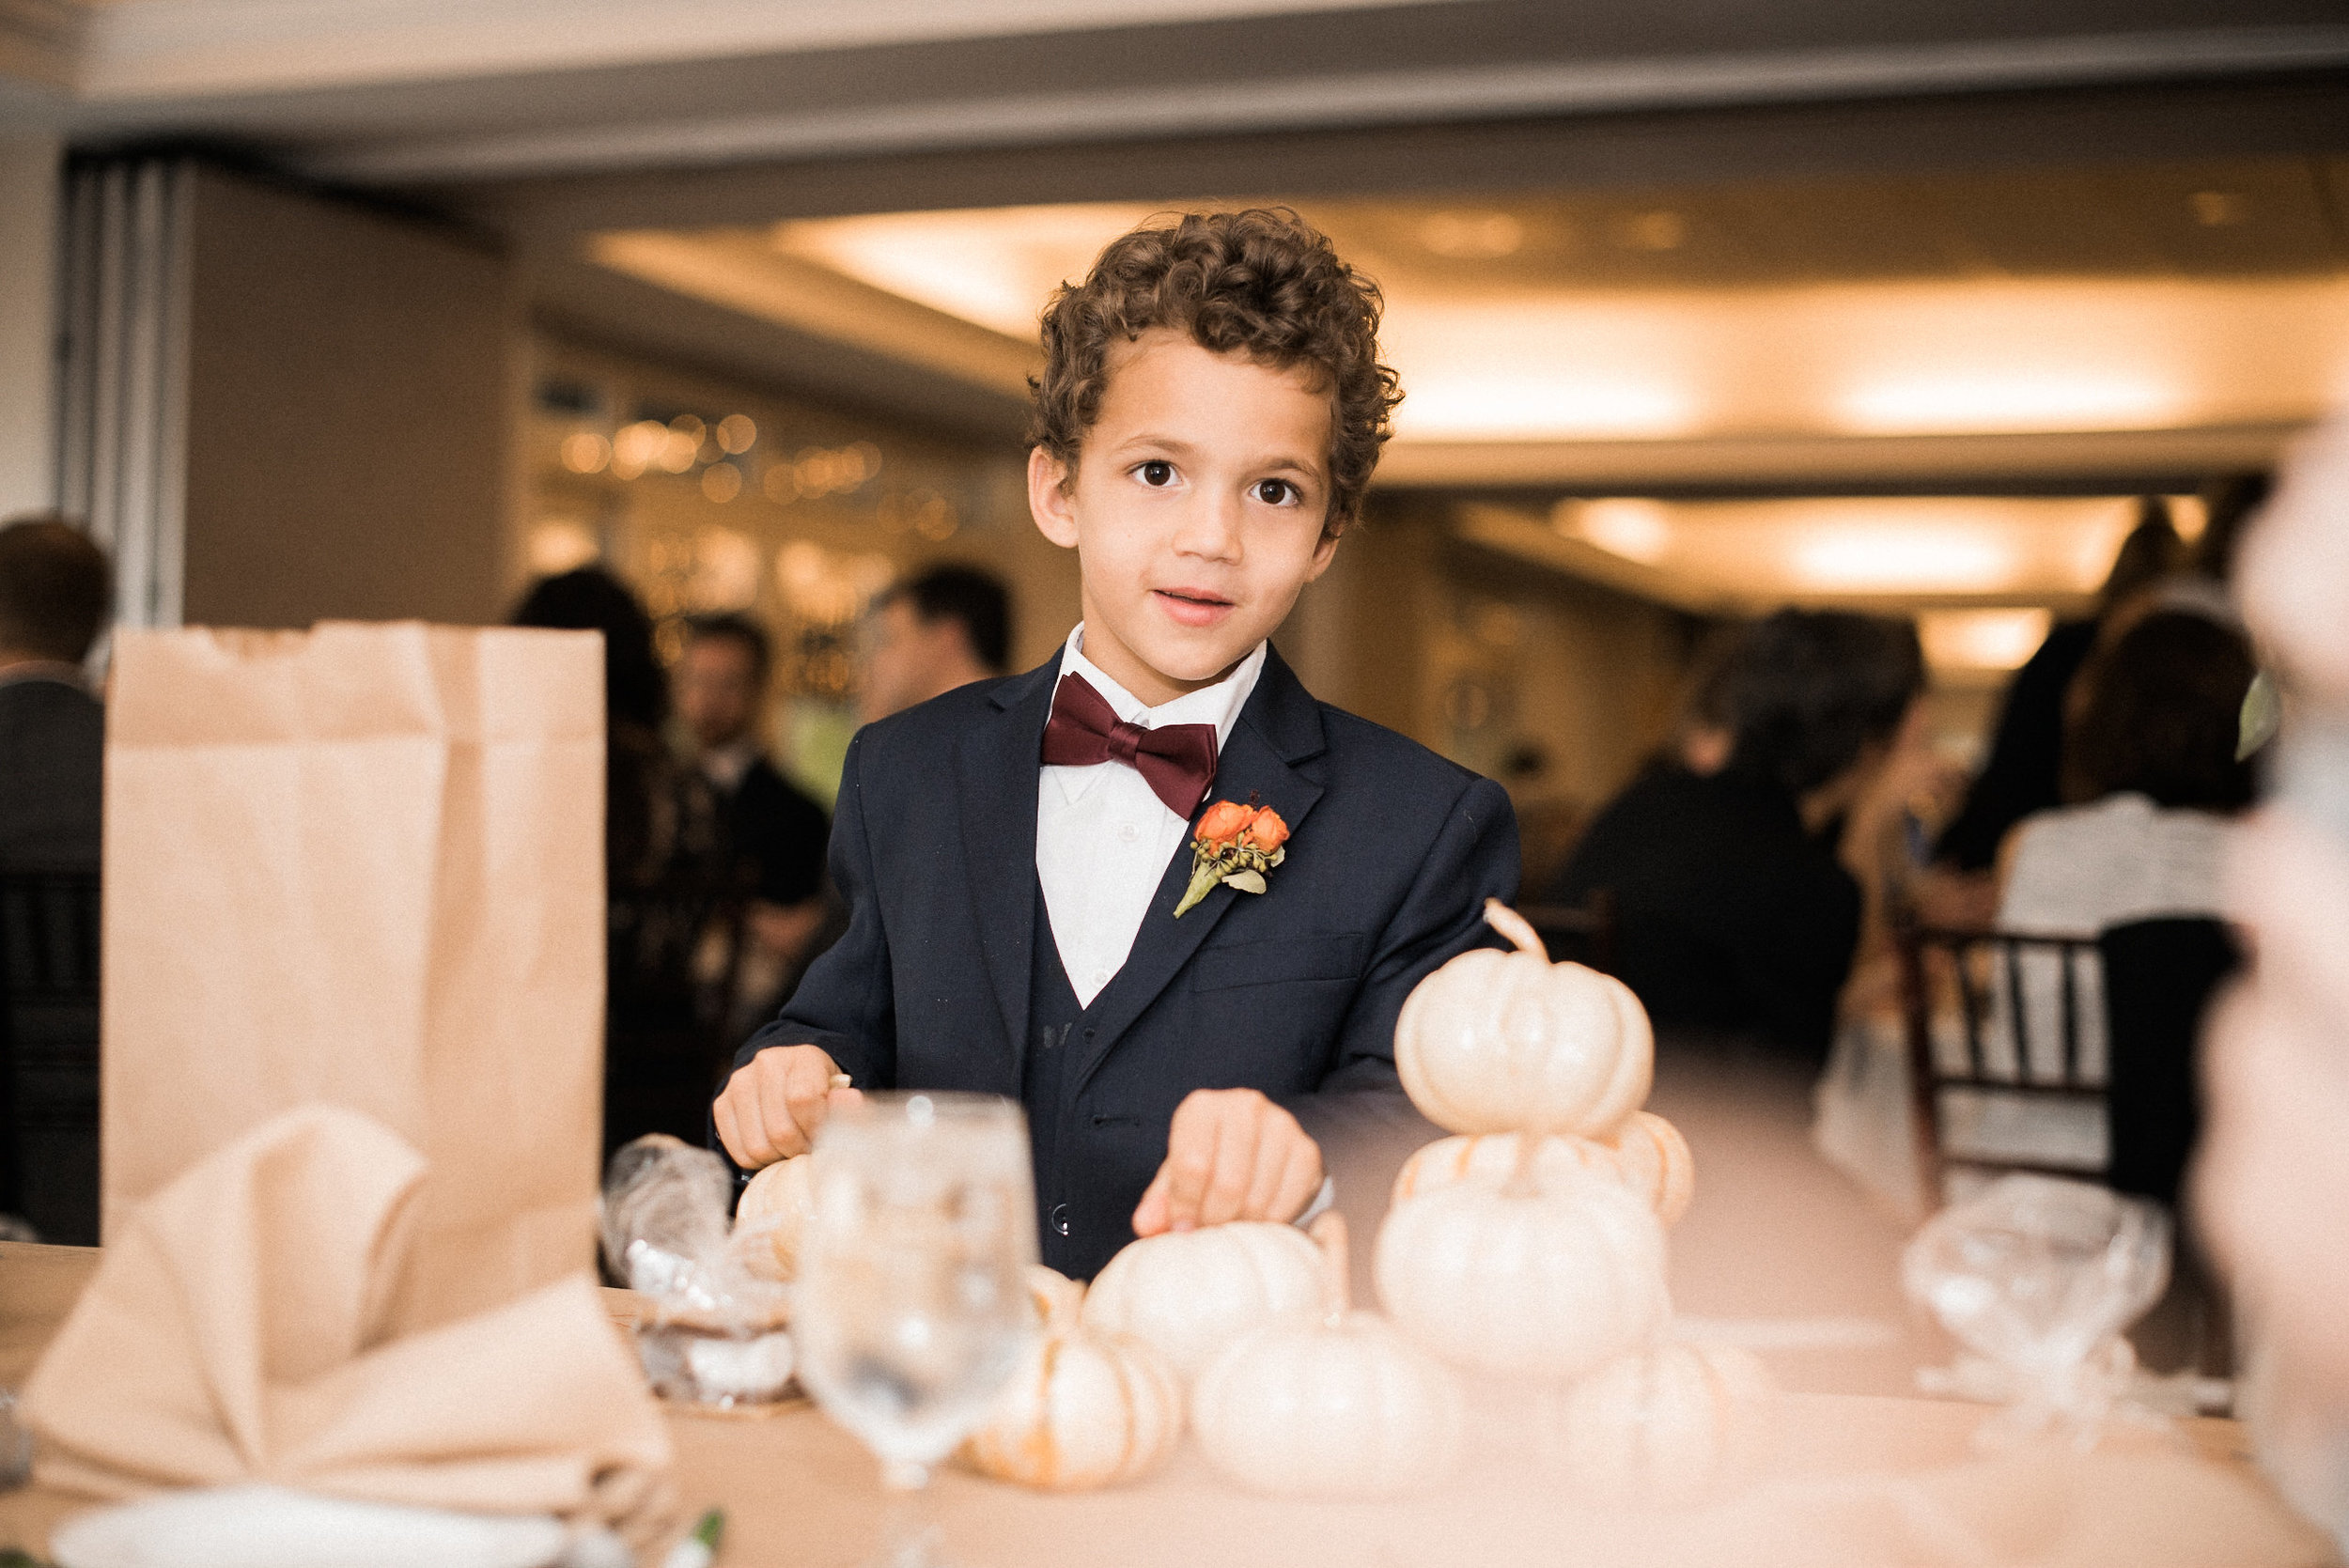 Child in tuxedo at wedding